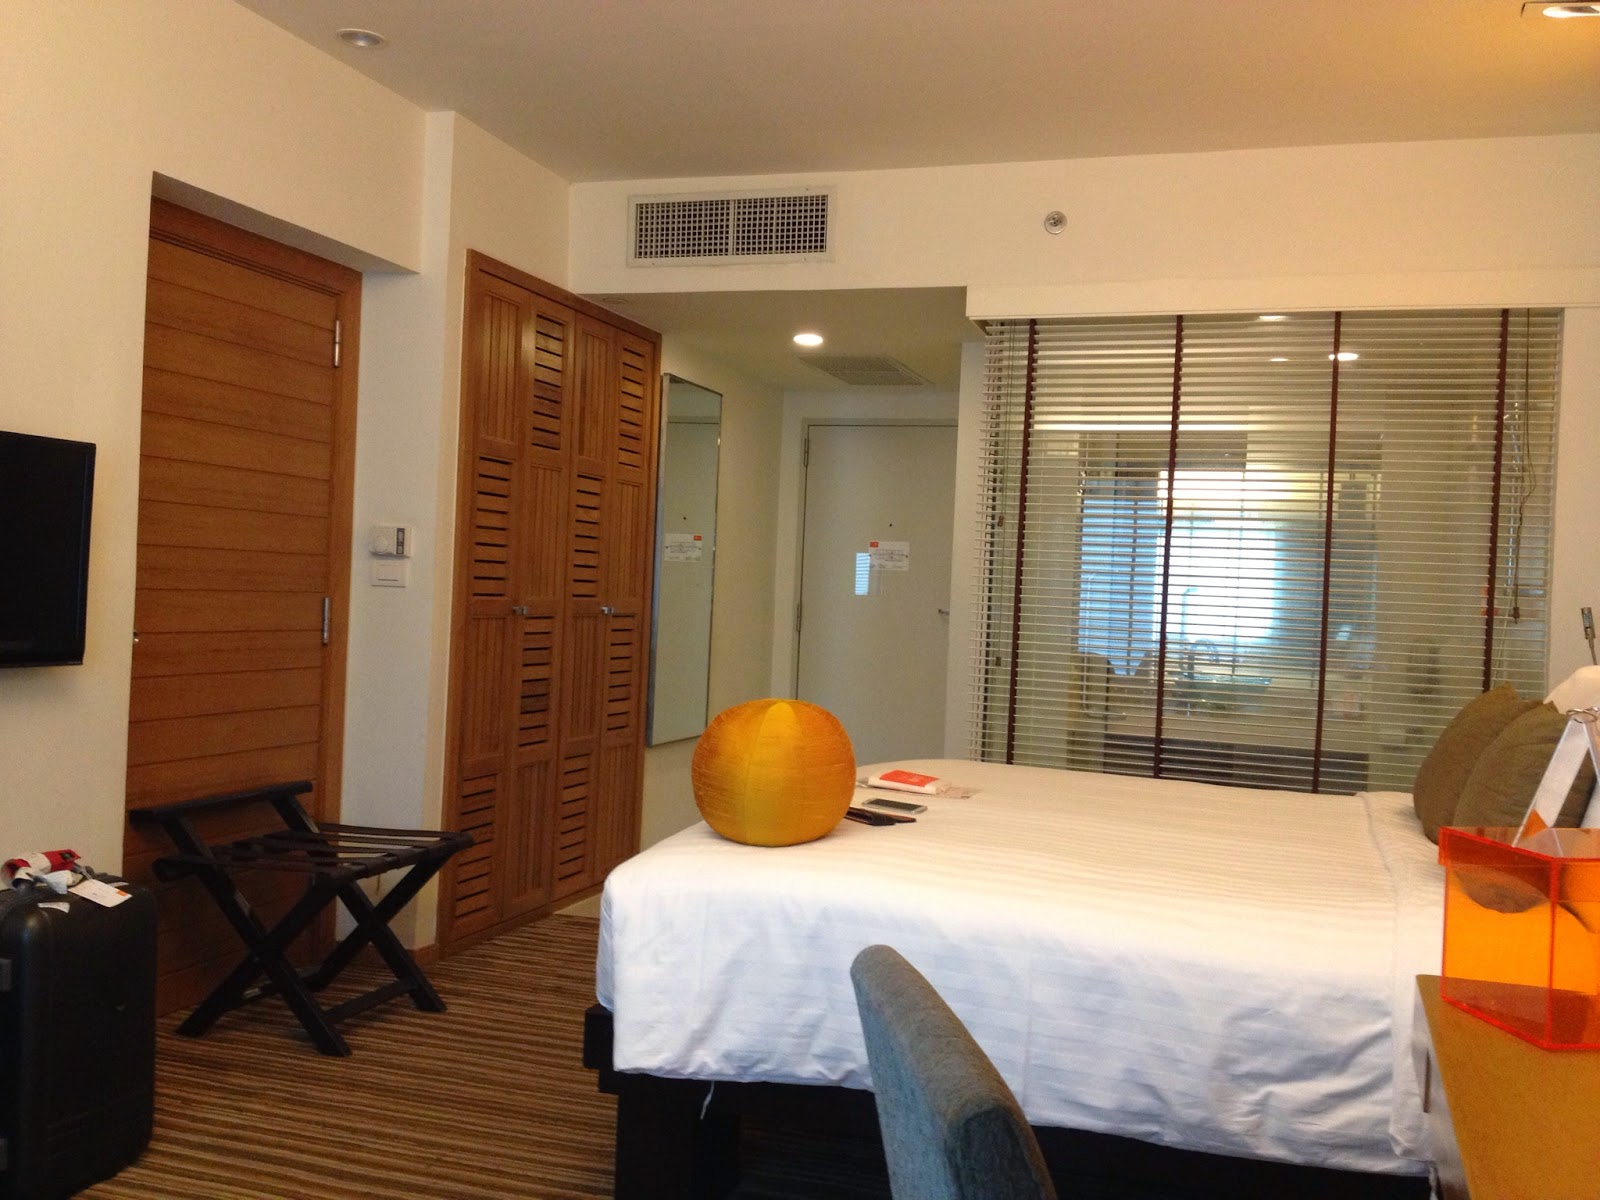 Chiang Mai - Our room at Dusit D2